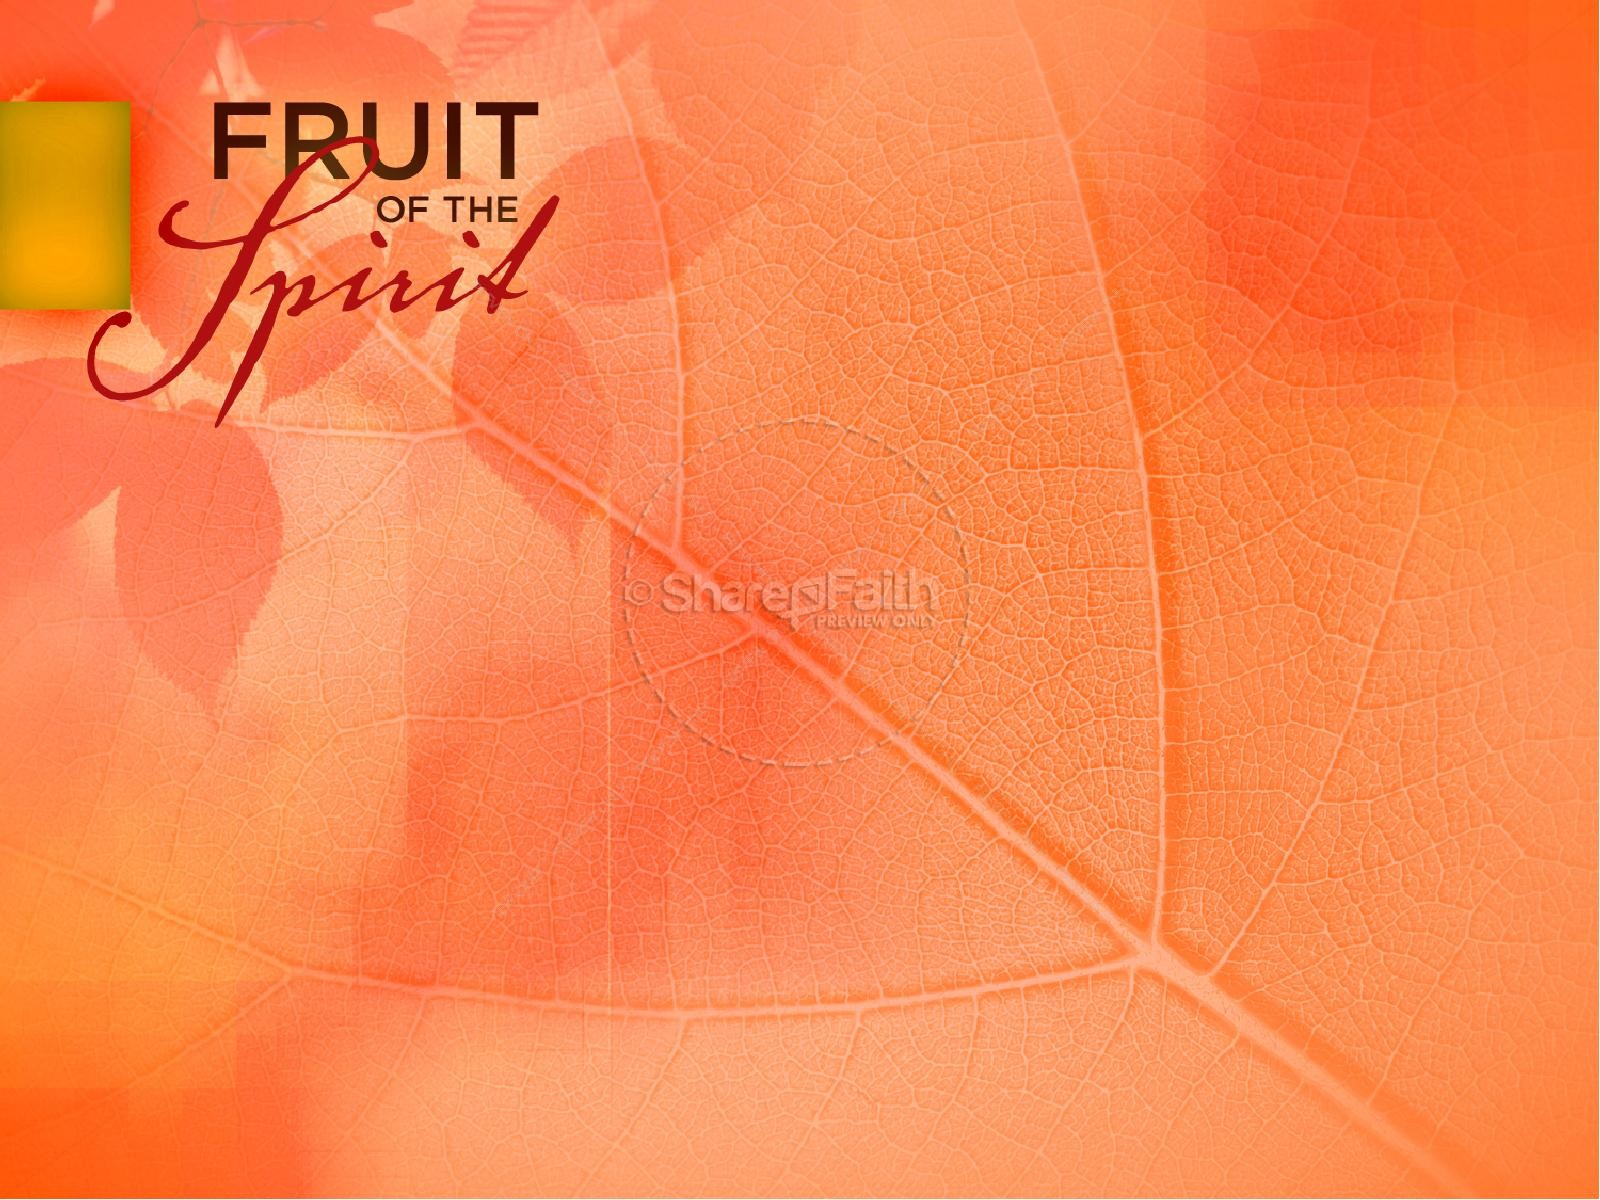 gentleness fruit of the spirit powerpoint template pentecost